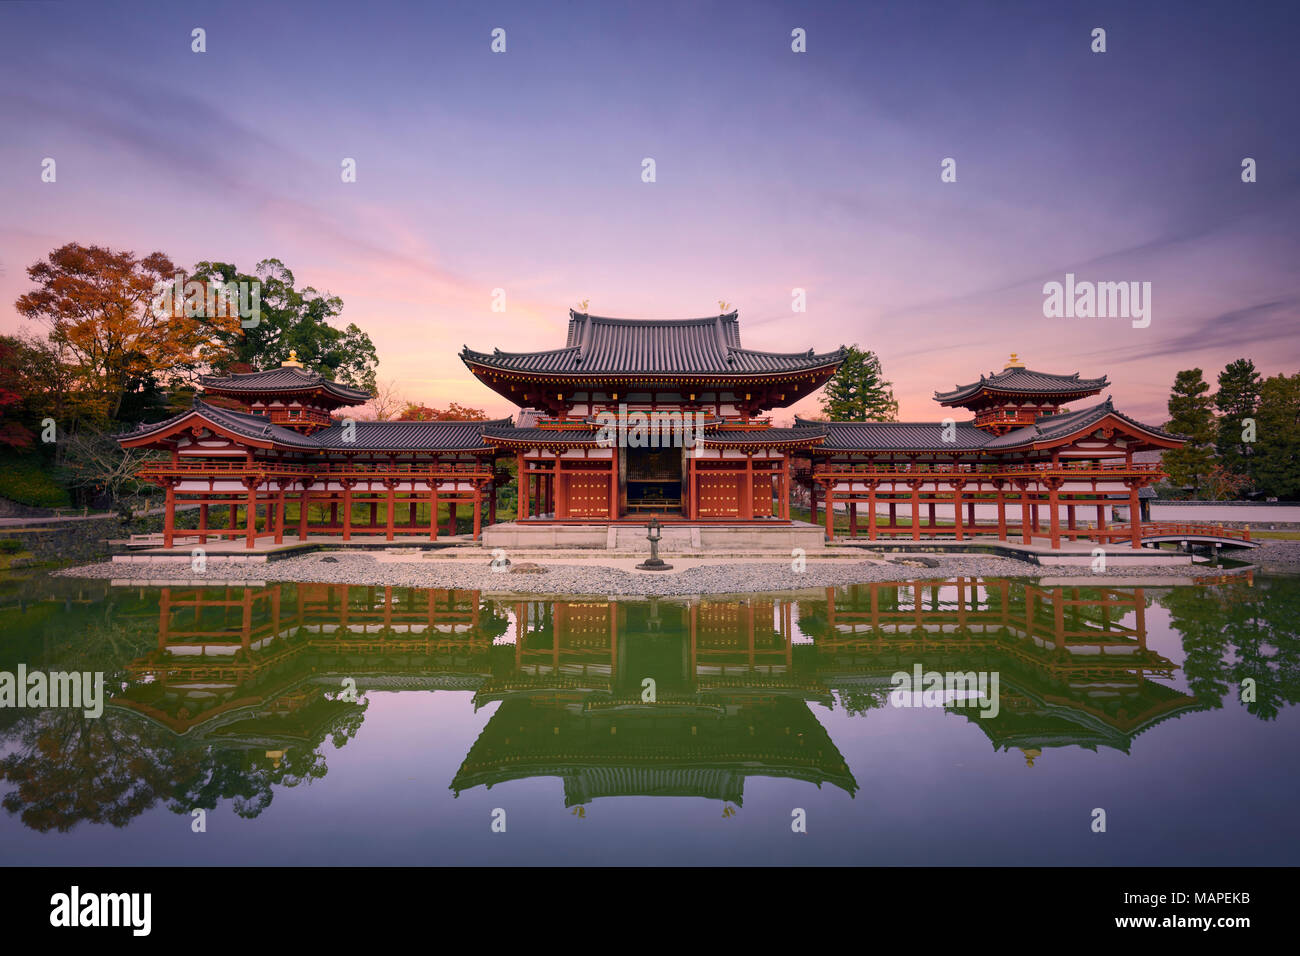 Beautiful tranquil sunset scenery of the Phoenix or Amida Hall of Byodoin, Byodo-in Japanese Buddhist temple reflecting in the clear calm water of Jod Stock Photo